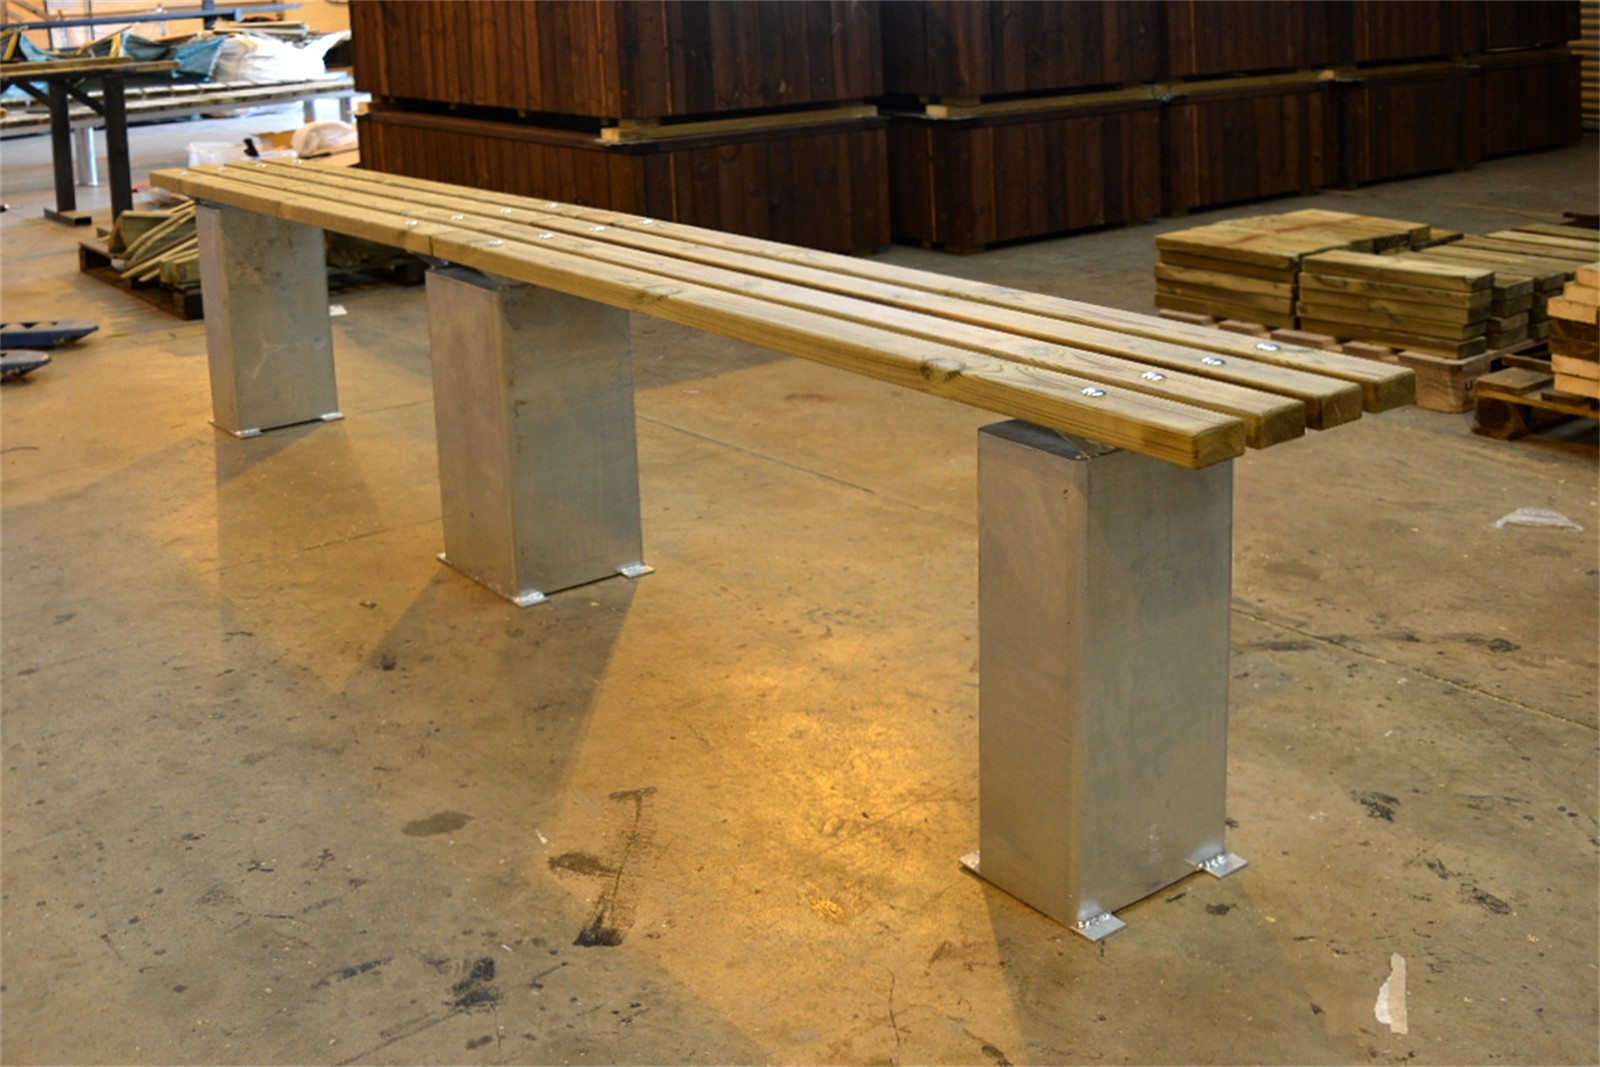 70sbe13 - Bexley long bench in manufacture